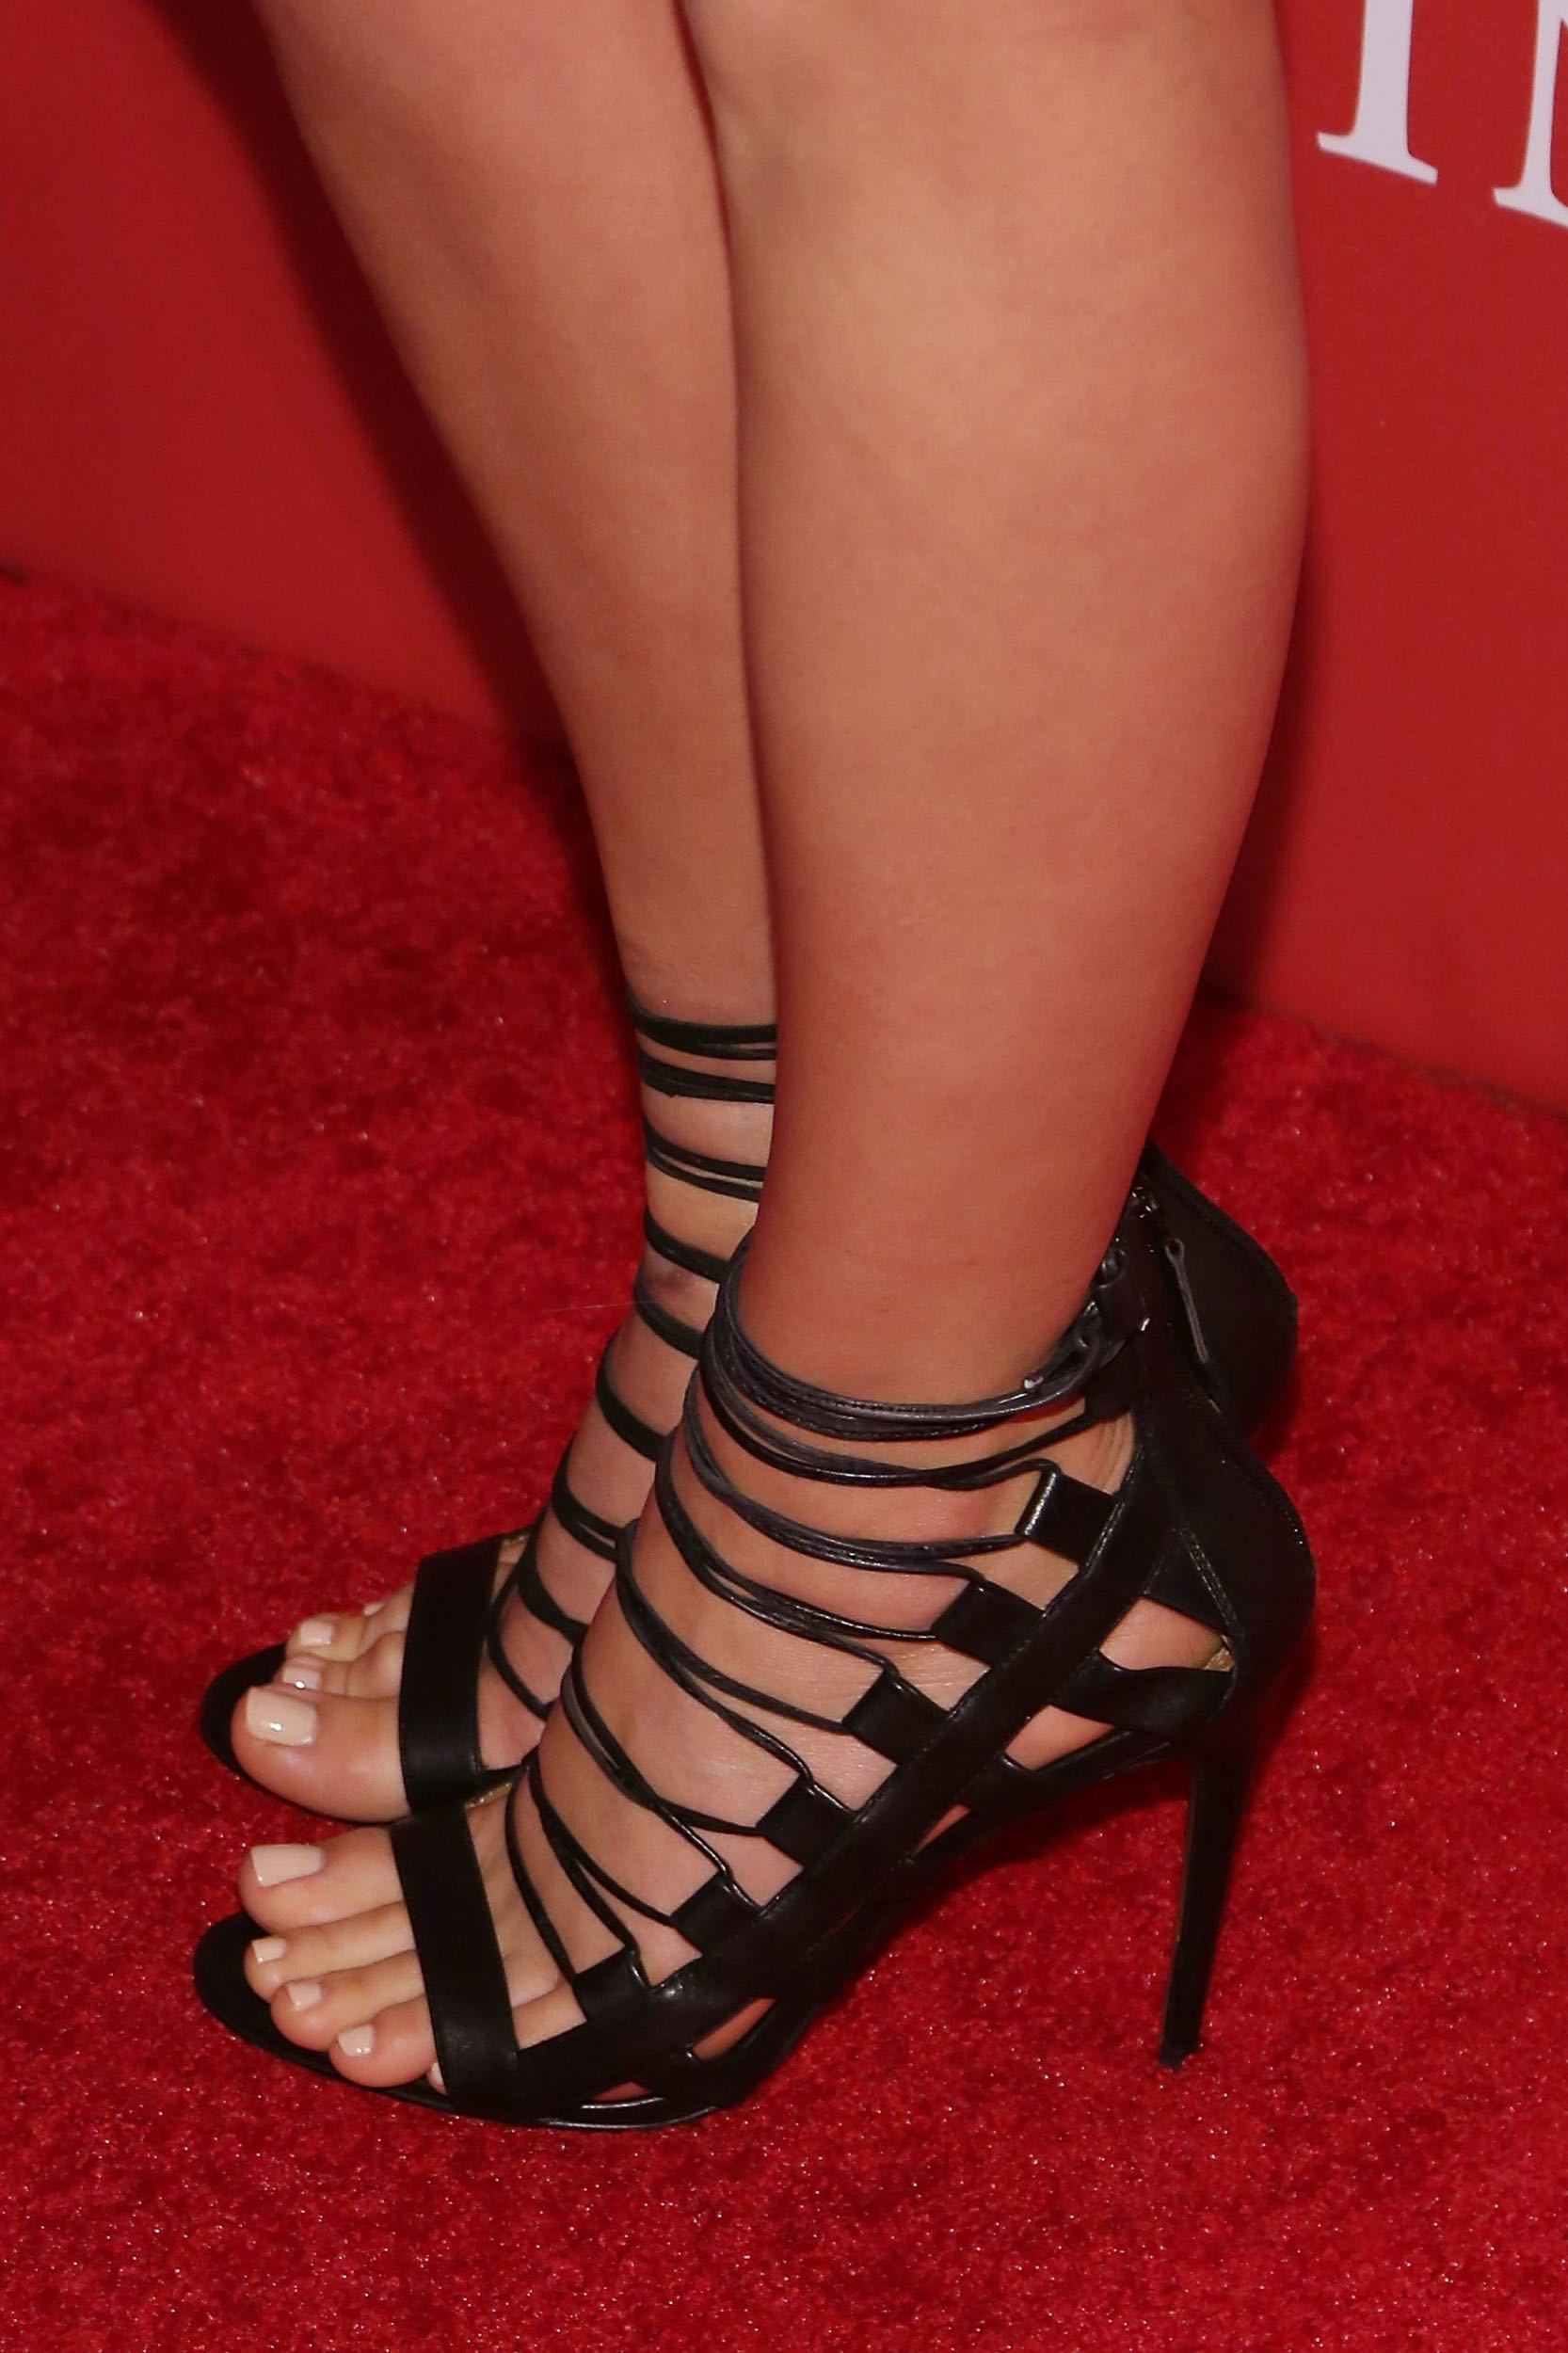 49 Hottest Margot Robbie Sexy Feet Pictures Will Rock Your